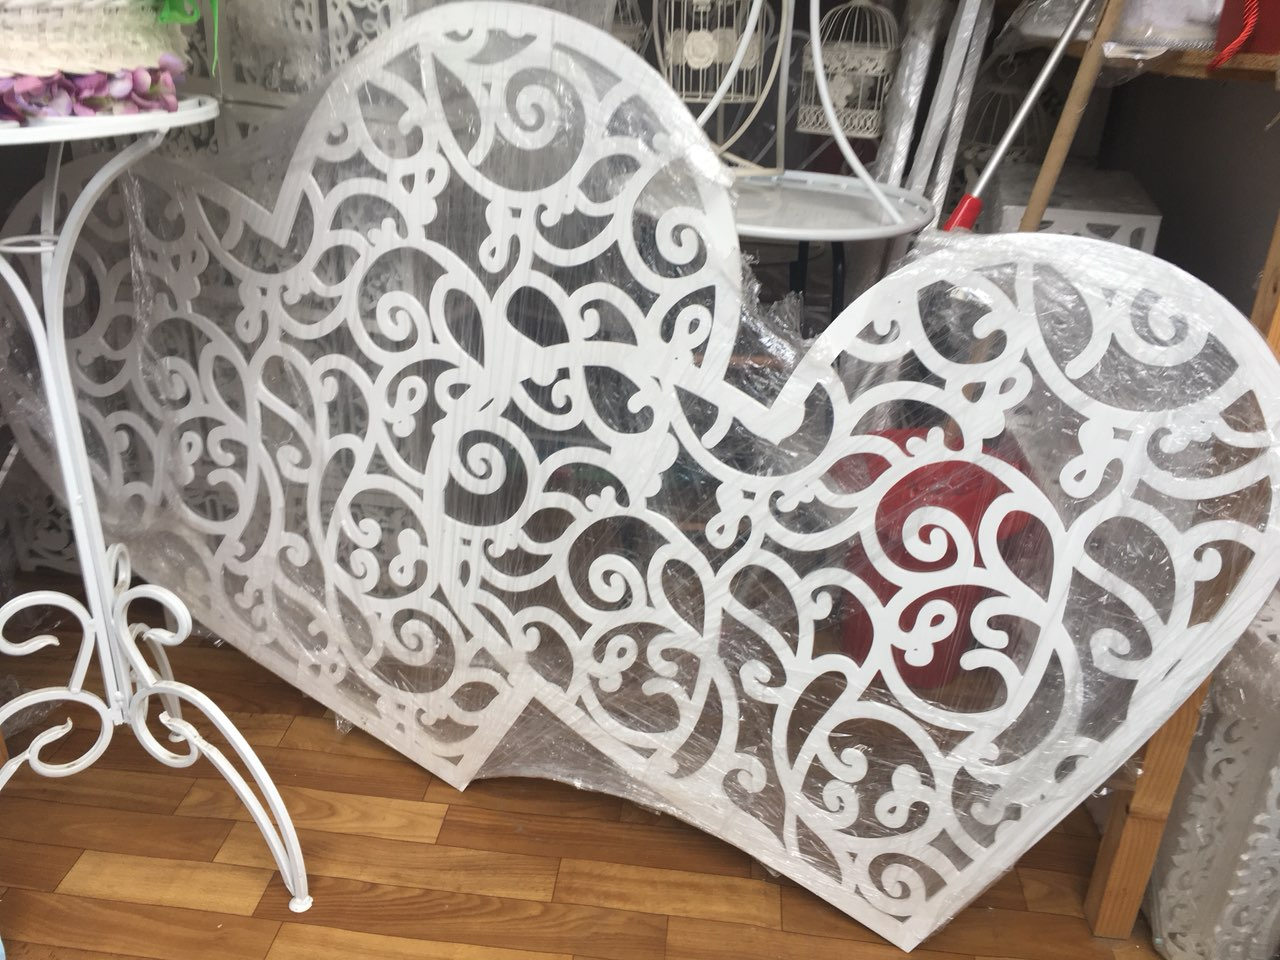 Laser Cut Heart Decor 3D Puzzle CDR File